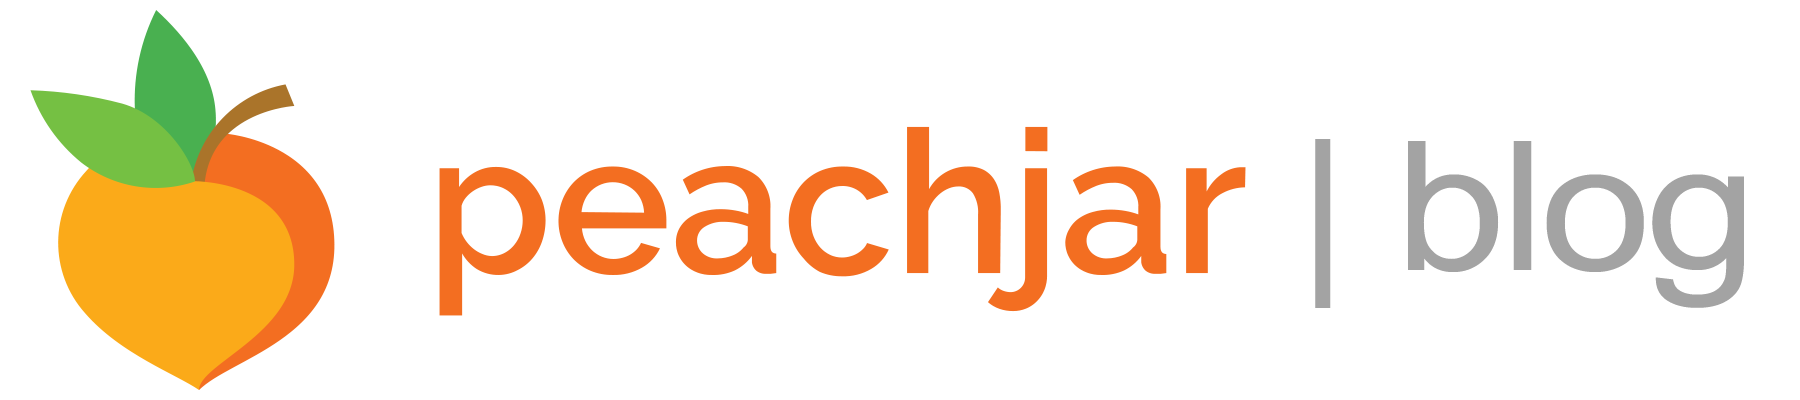 Peachjar-blog-logo-1.png